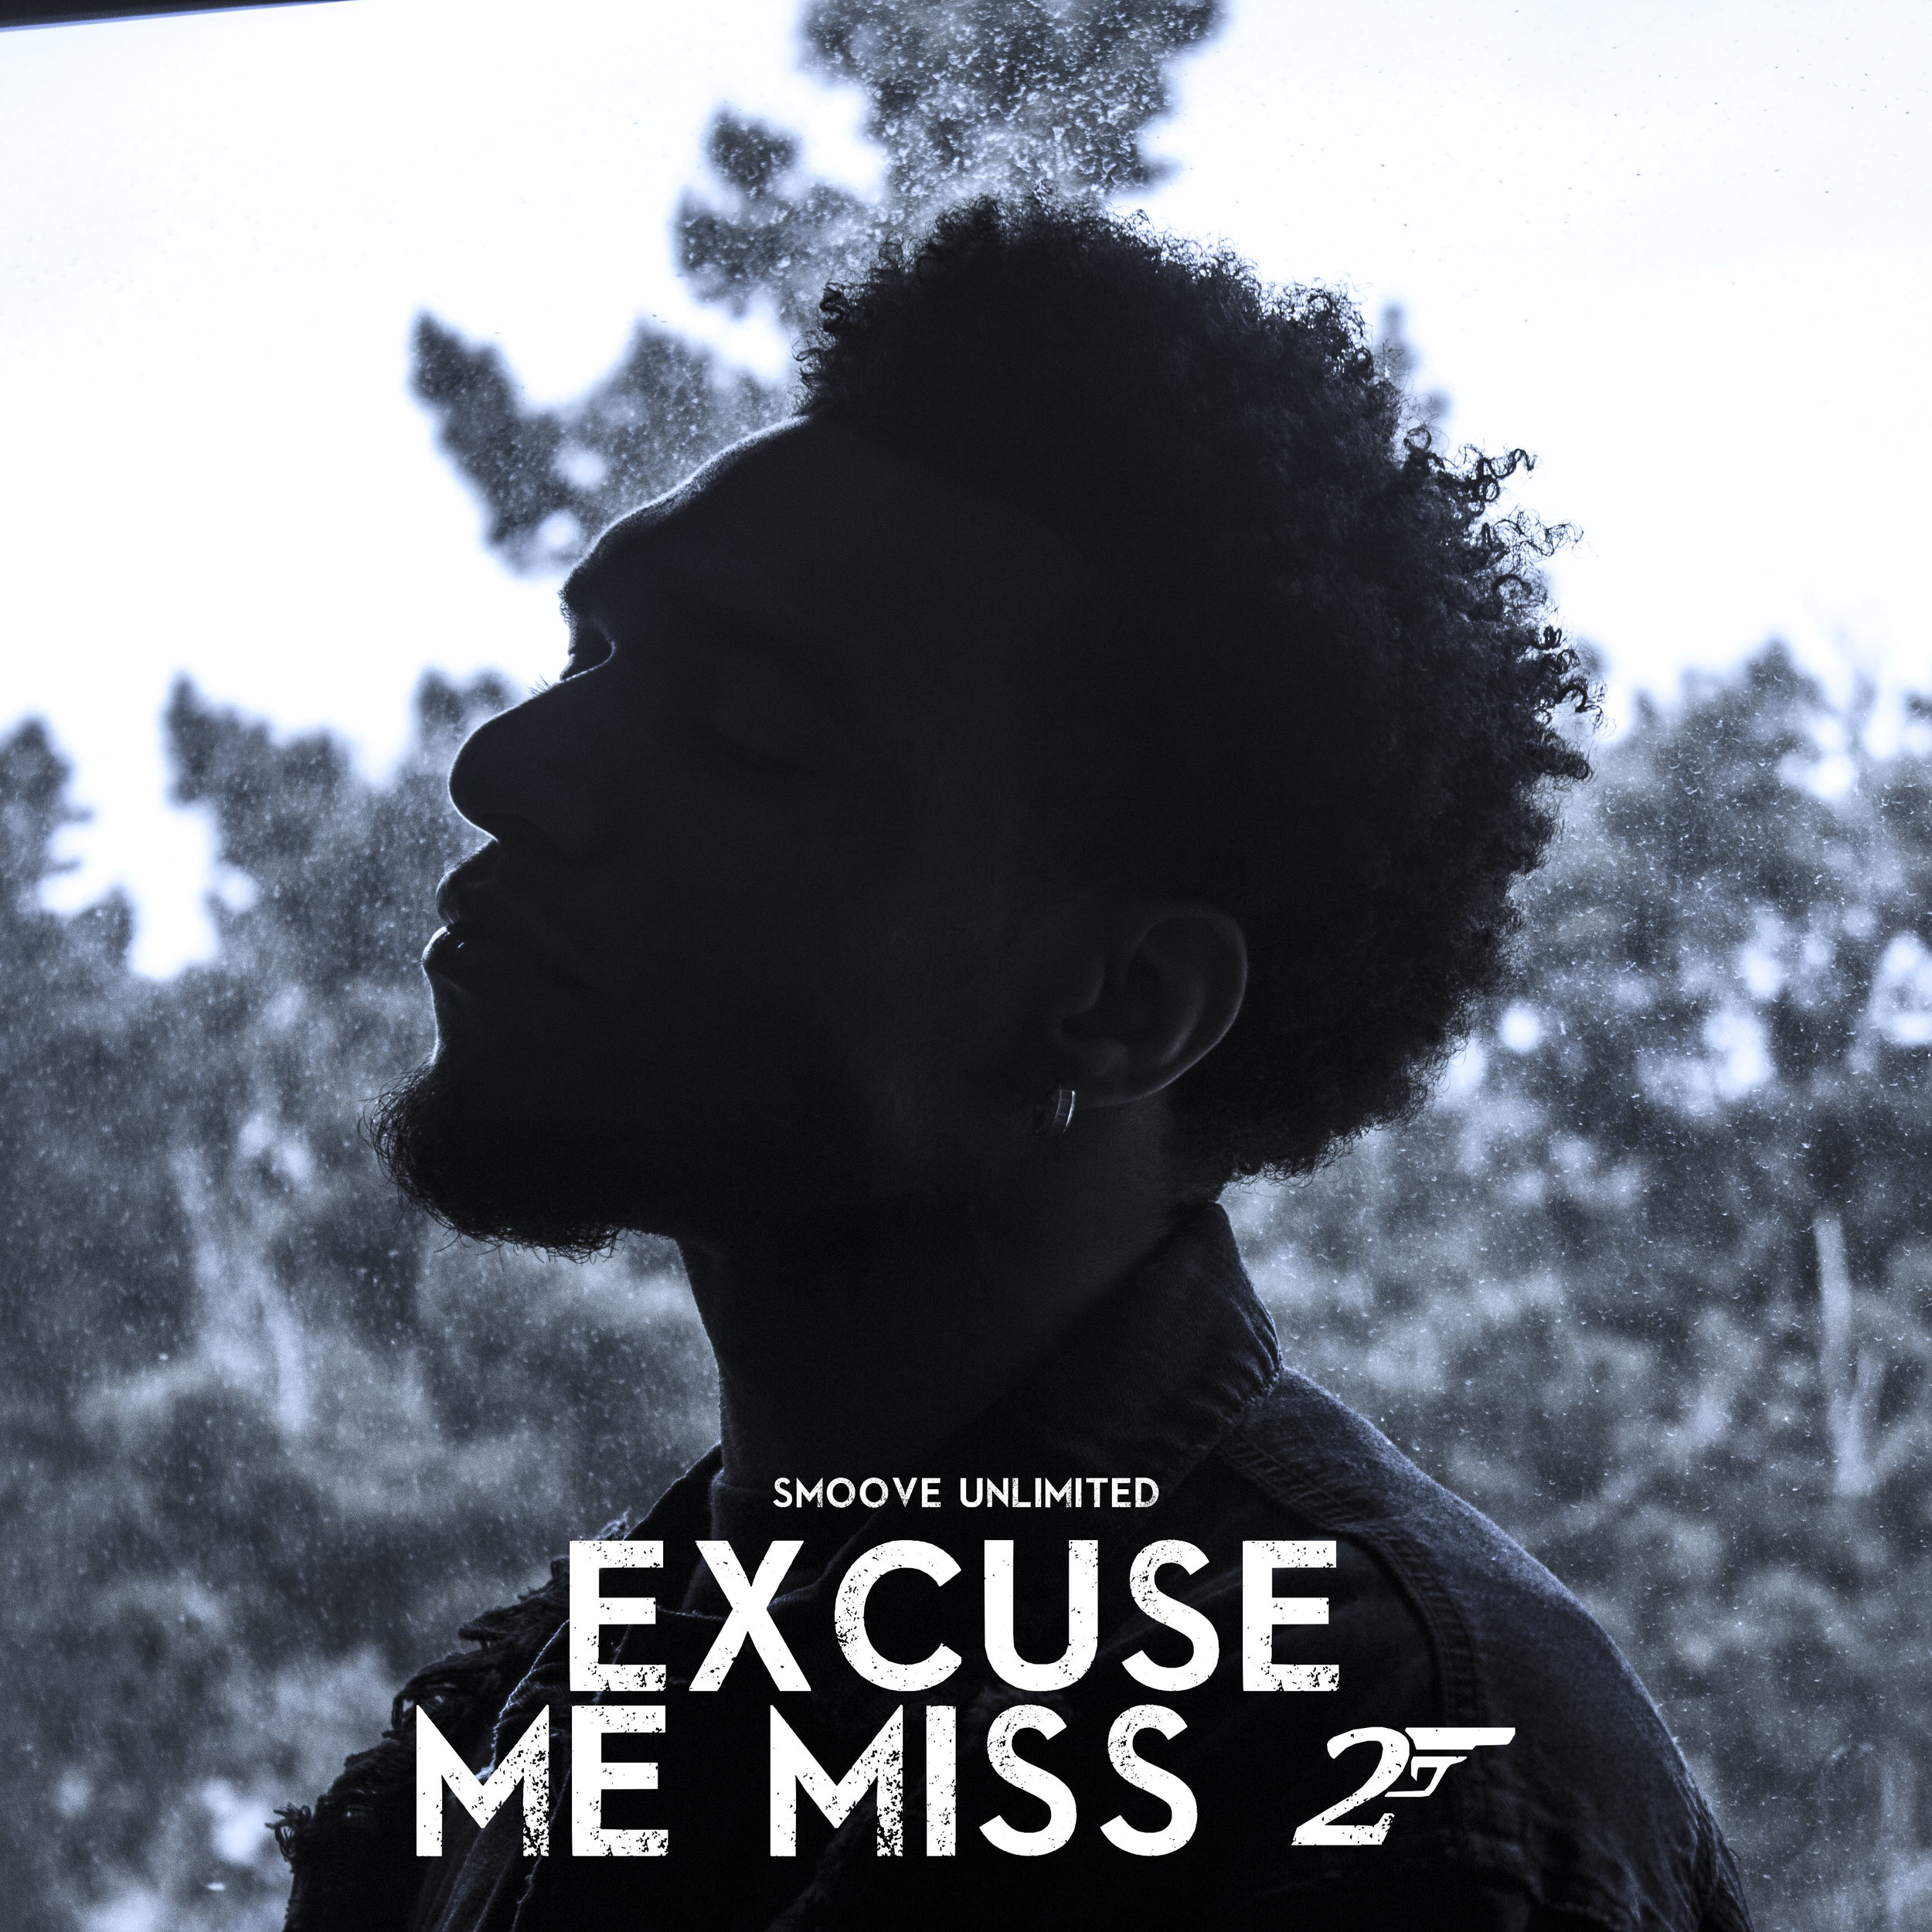 Excuse Me Miss 2 - Written by Smoove Unlimited